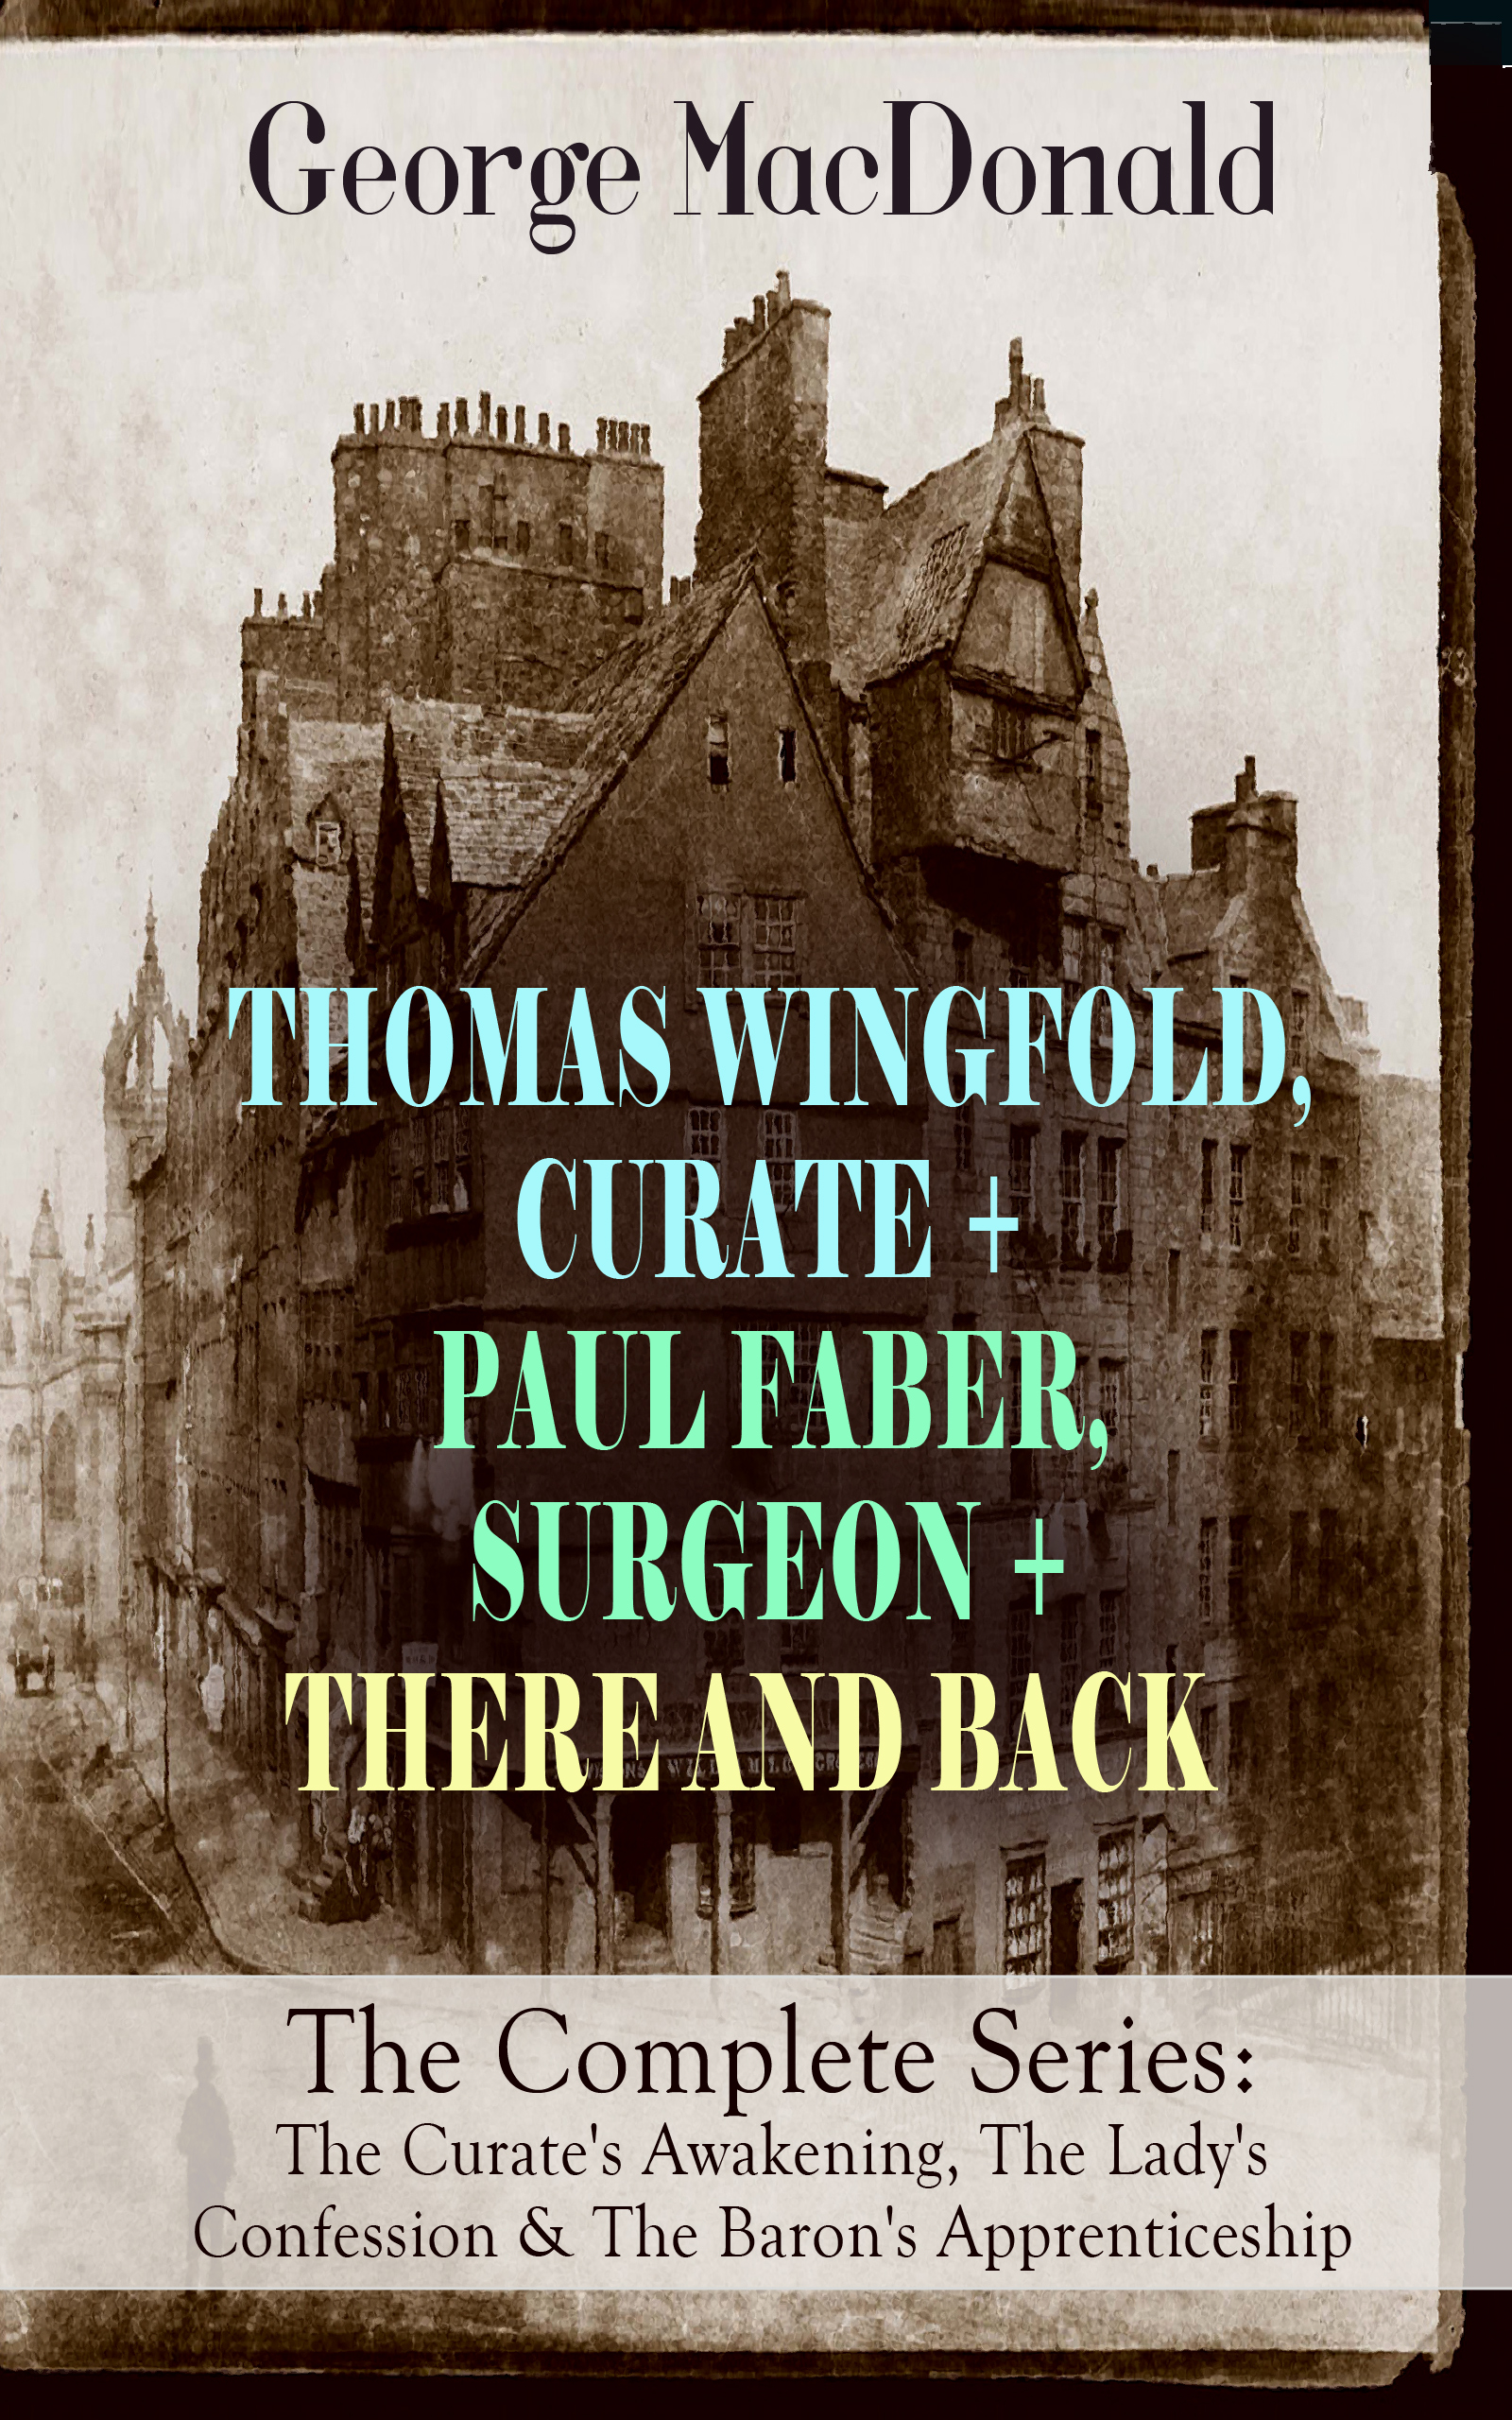 George MacDonald THOMAS WINGFOLD, CURATE + PAUL FABER, SURGEON + THERE AND BACK - The Complete Series: The Curate's Awakening, The Lady's Confession & The Baron's Apprenticeship george macdonald st george and st michael